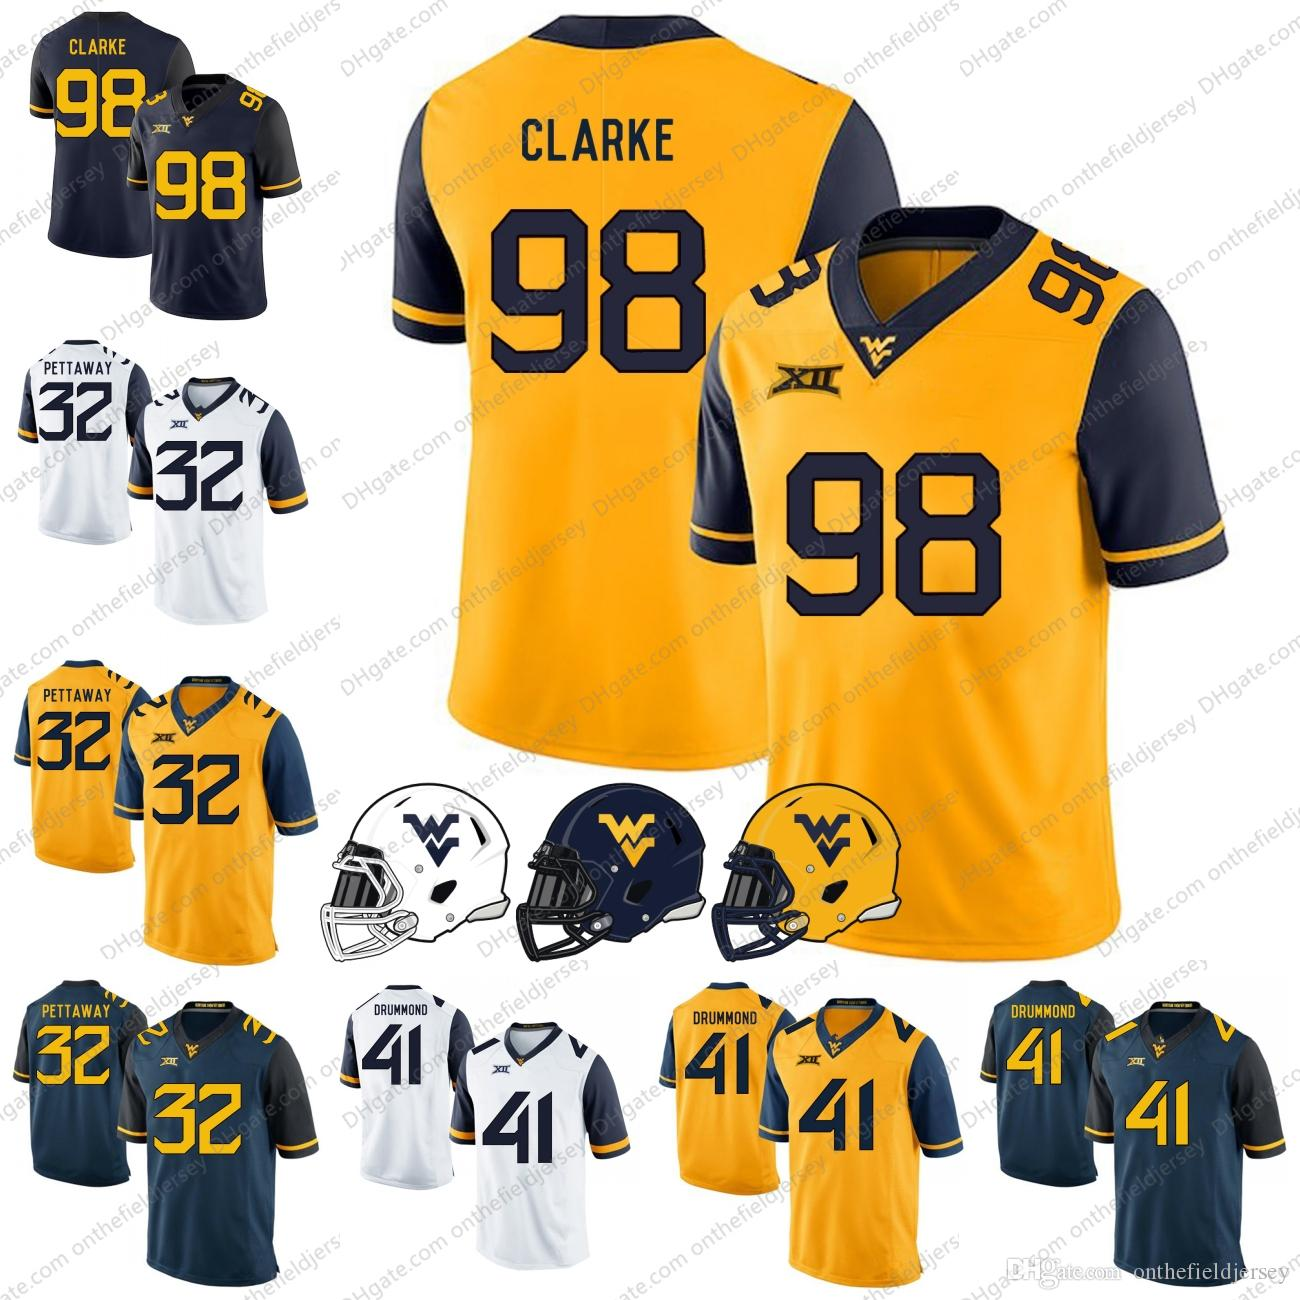 2019 West Virginia Mountaineers 2018 NEW STYLE  98 Will Clarke 41 Elijah  Drummond 32 Martell Pettaway College Football Jerseys S 3XL From  Onthefieldjersey 0f53cdebe